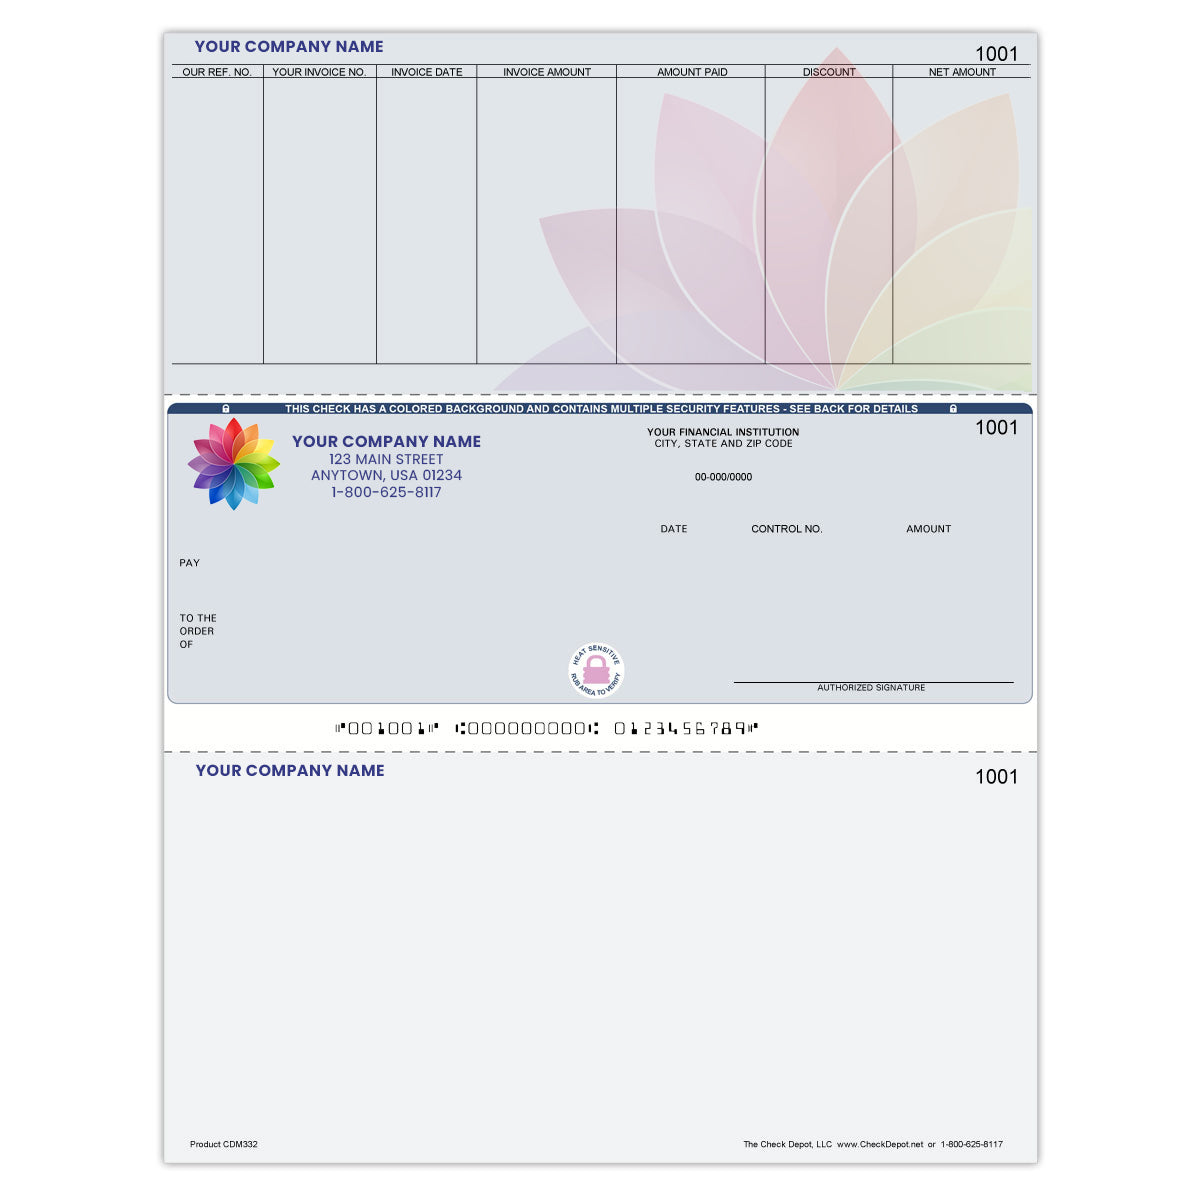 Full-Color, High-Security Laser Middle Accounts Payable Computer Checks - Check Depot